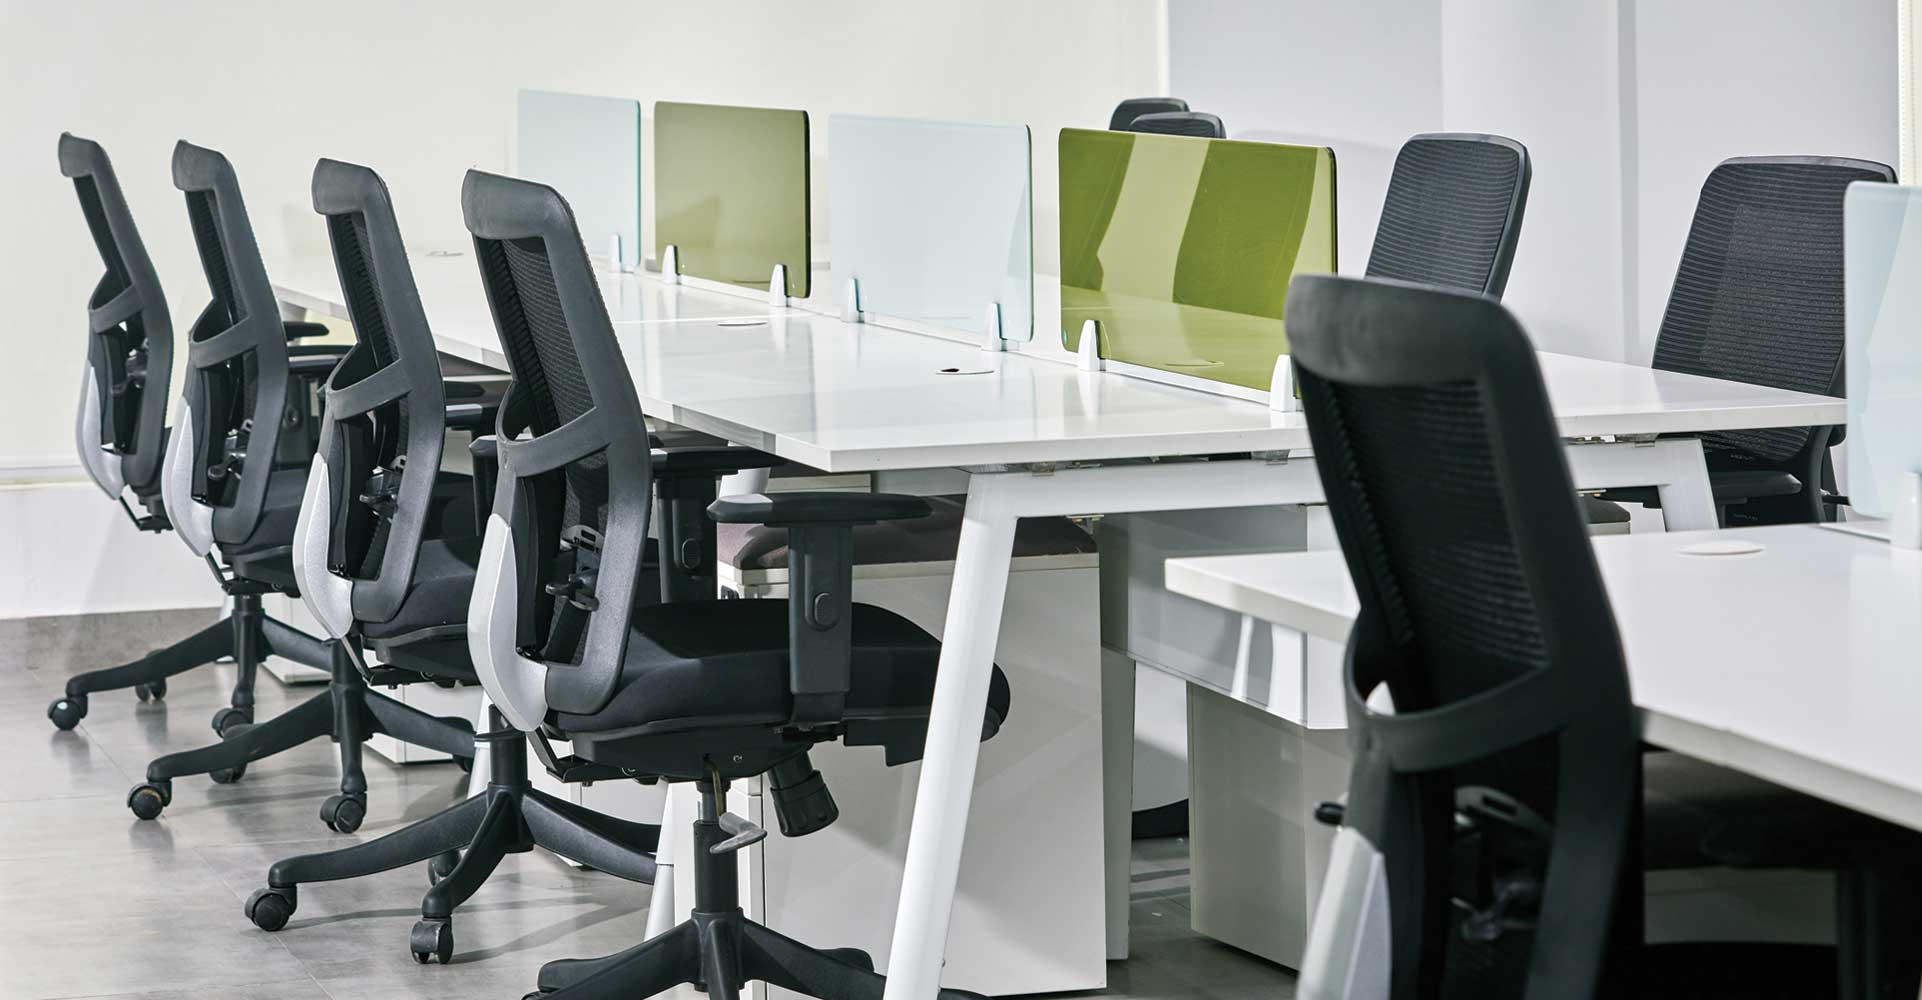 Isit Office Space Solution Office Furniture Office Chairs Modular Workstation Manufacturers In Bangalore Office Chairs Furniture Online In Bangalore India